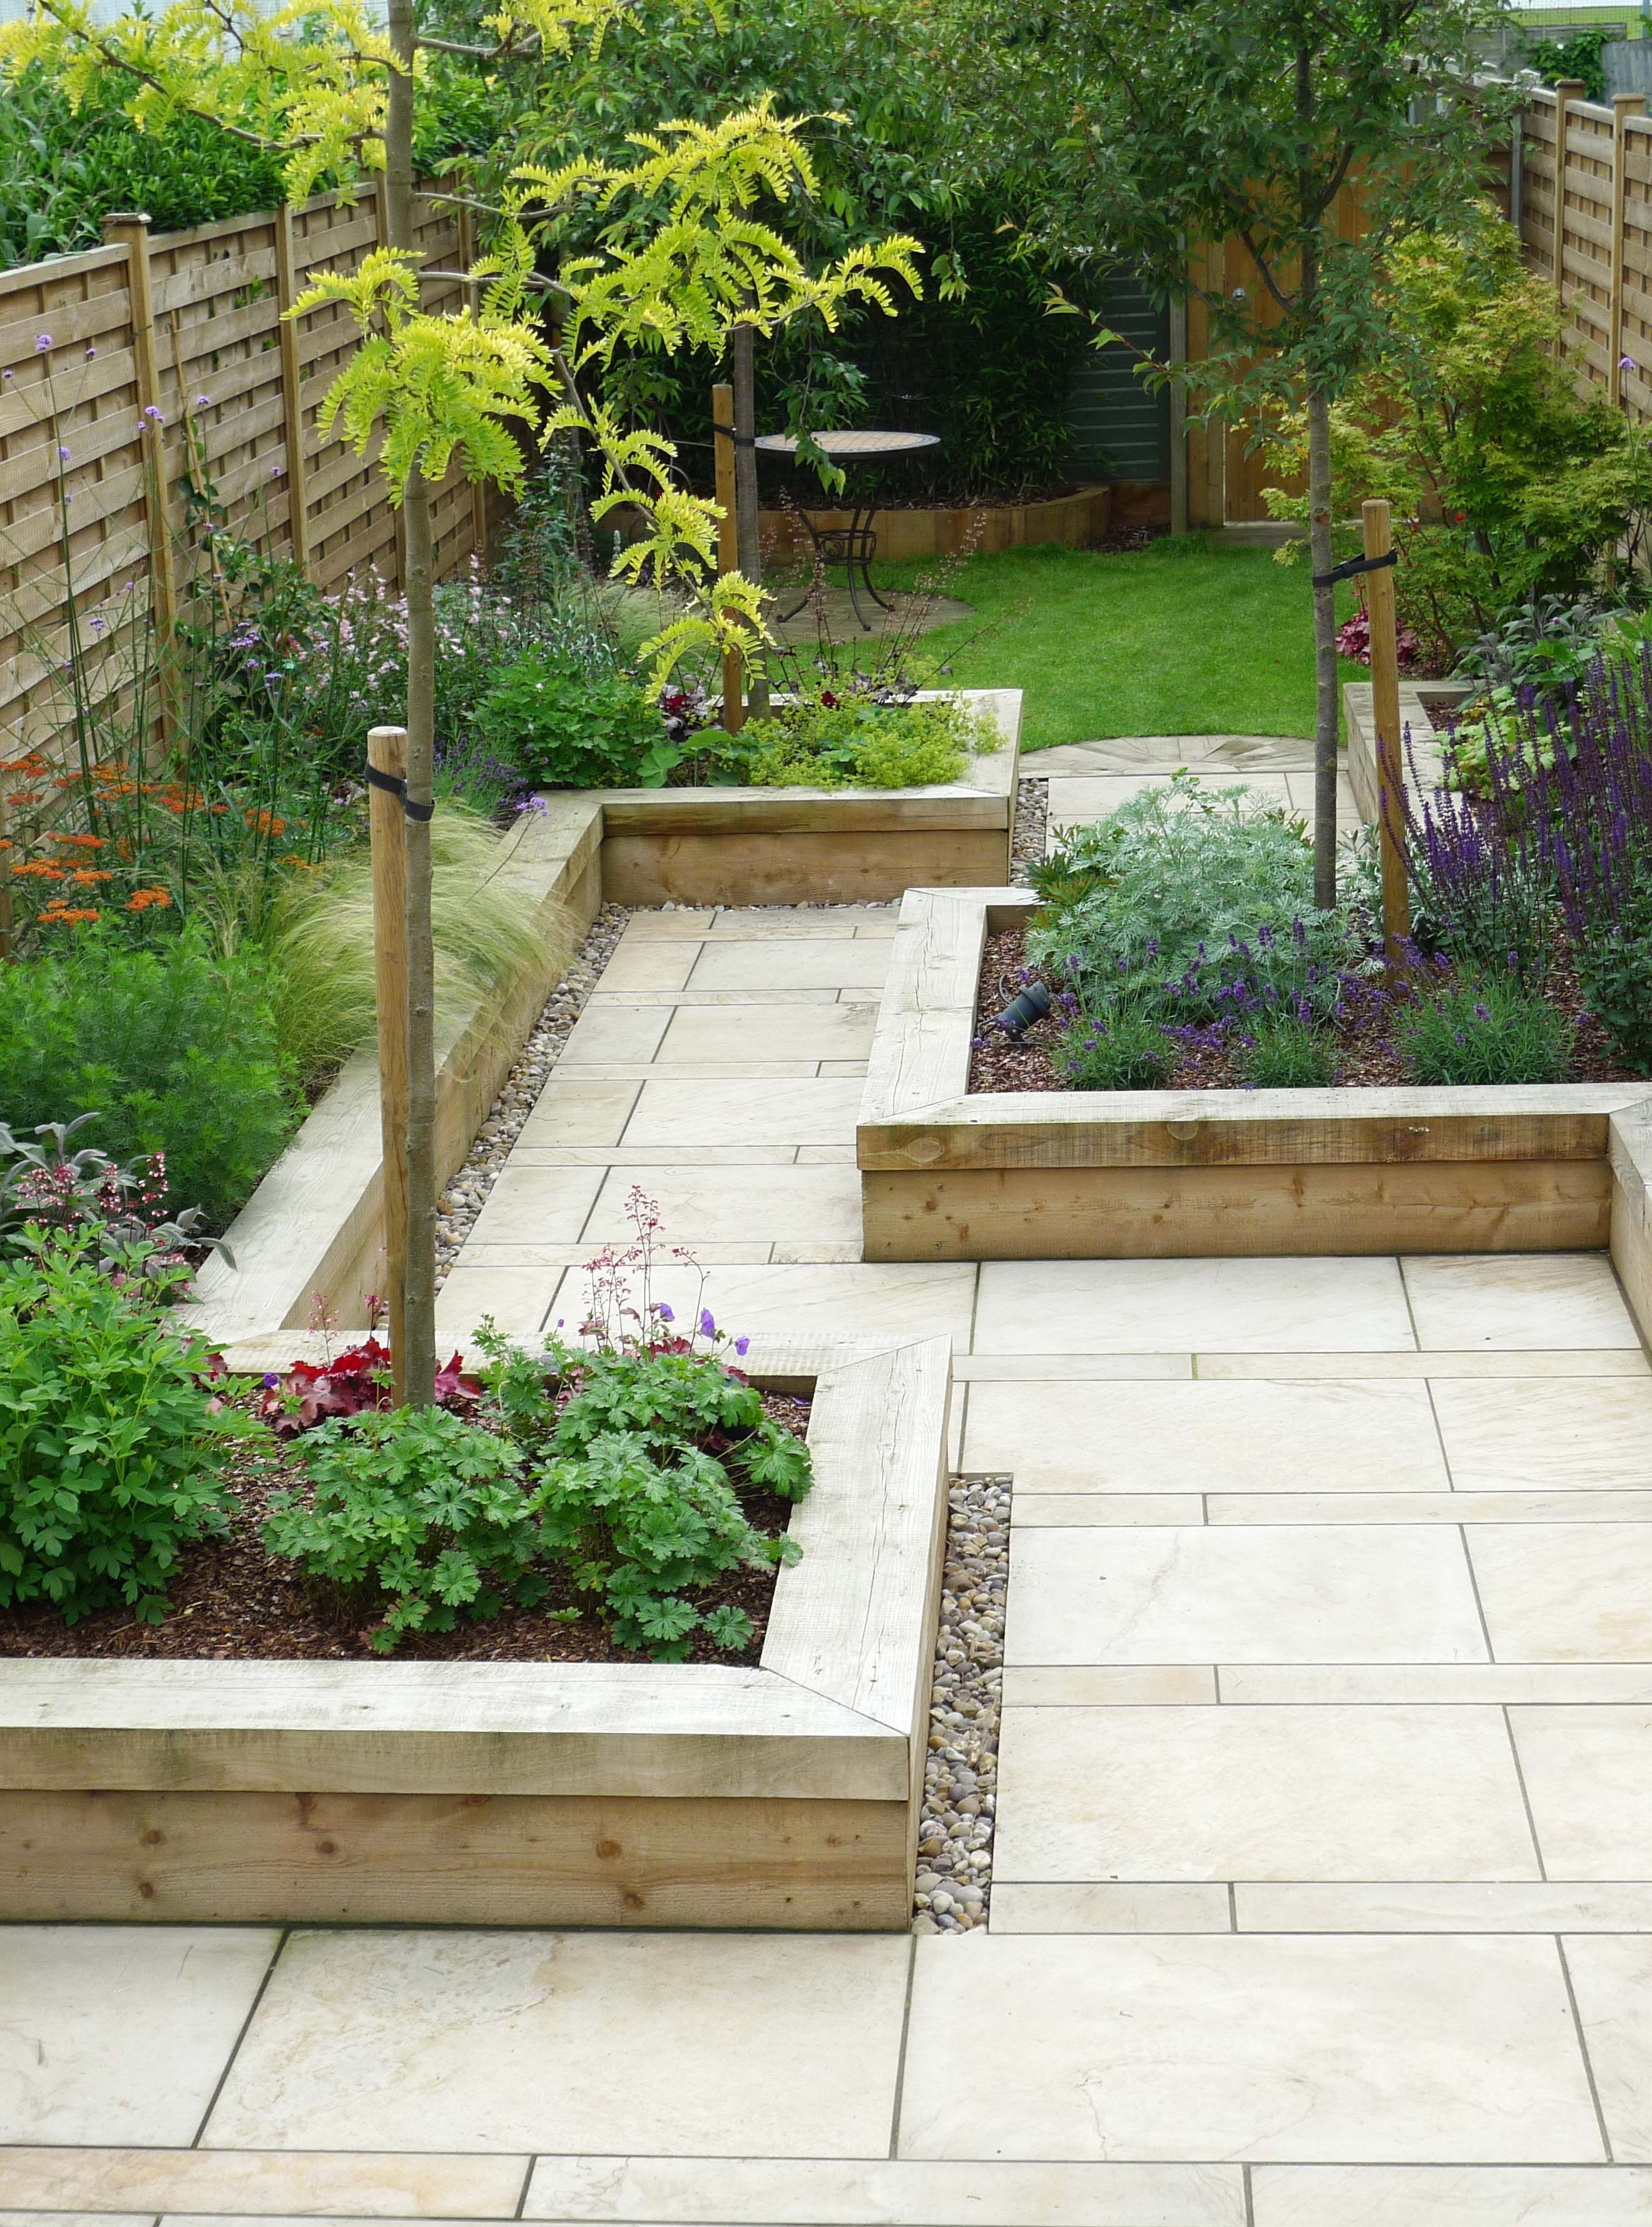 Enchanting Small Garden Landscape Ideas With Stepping Walk: Raised Bedding Walkway In Backyard...but Gravel And